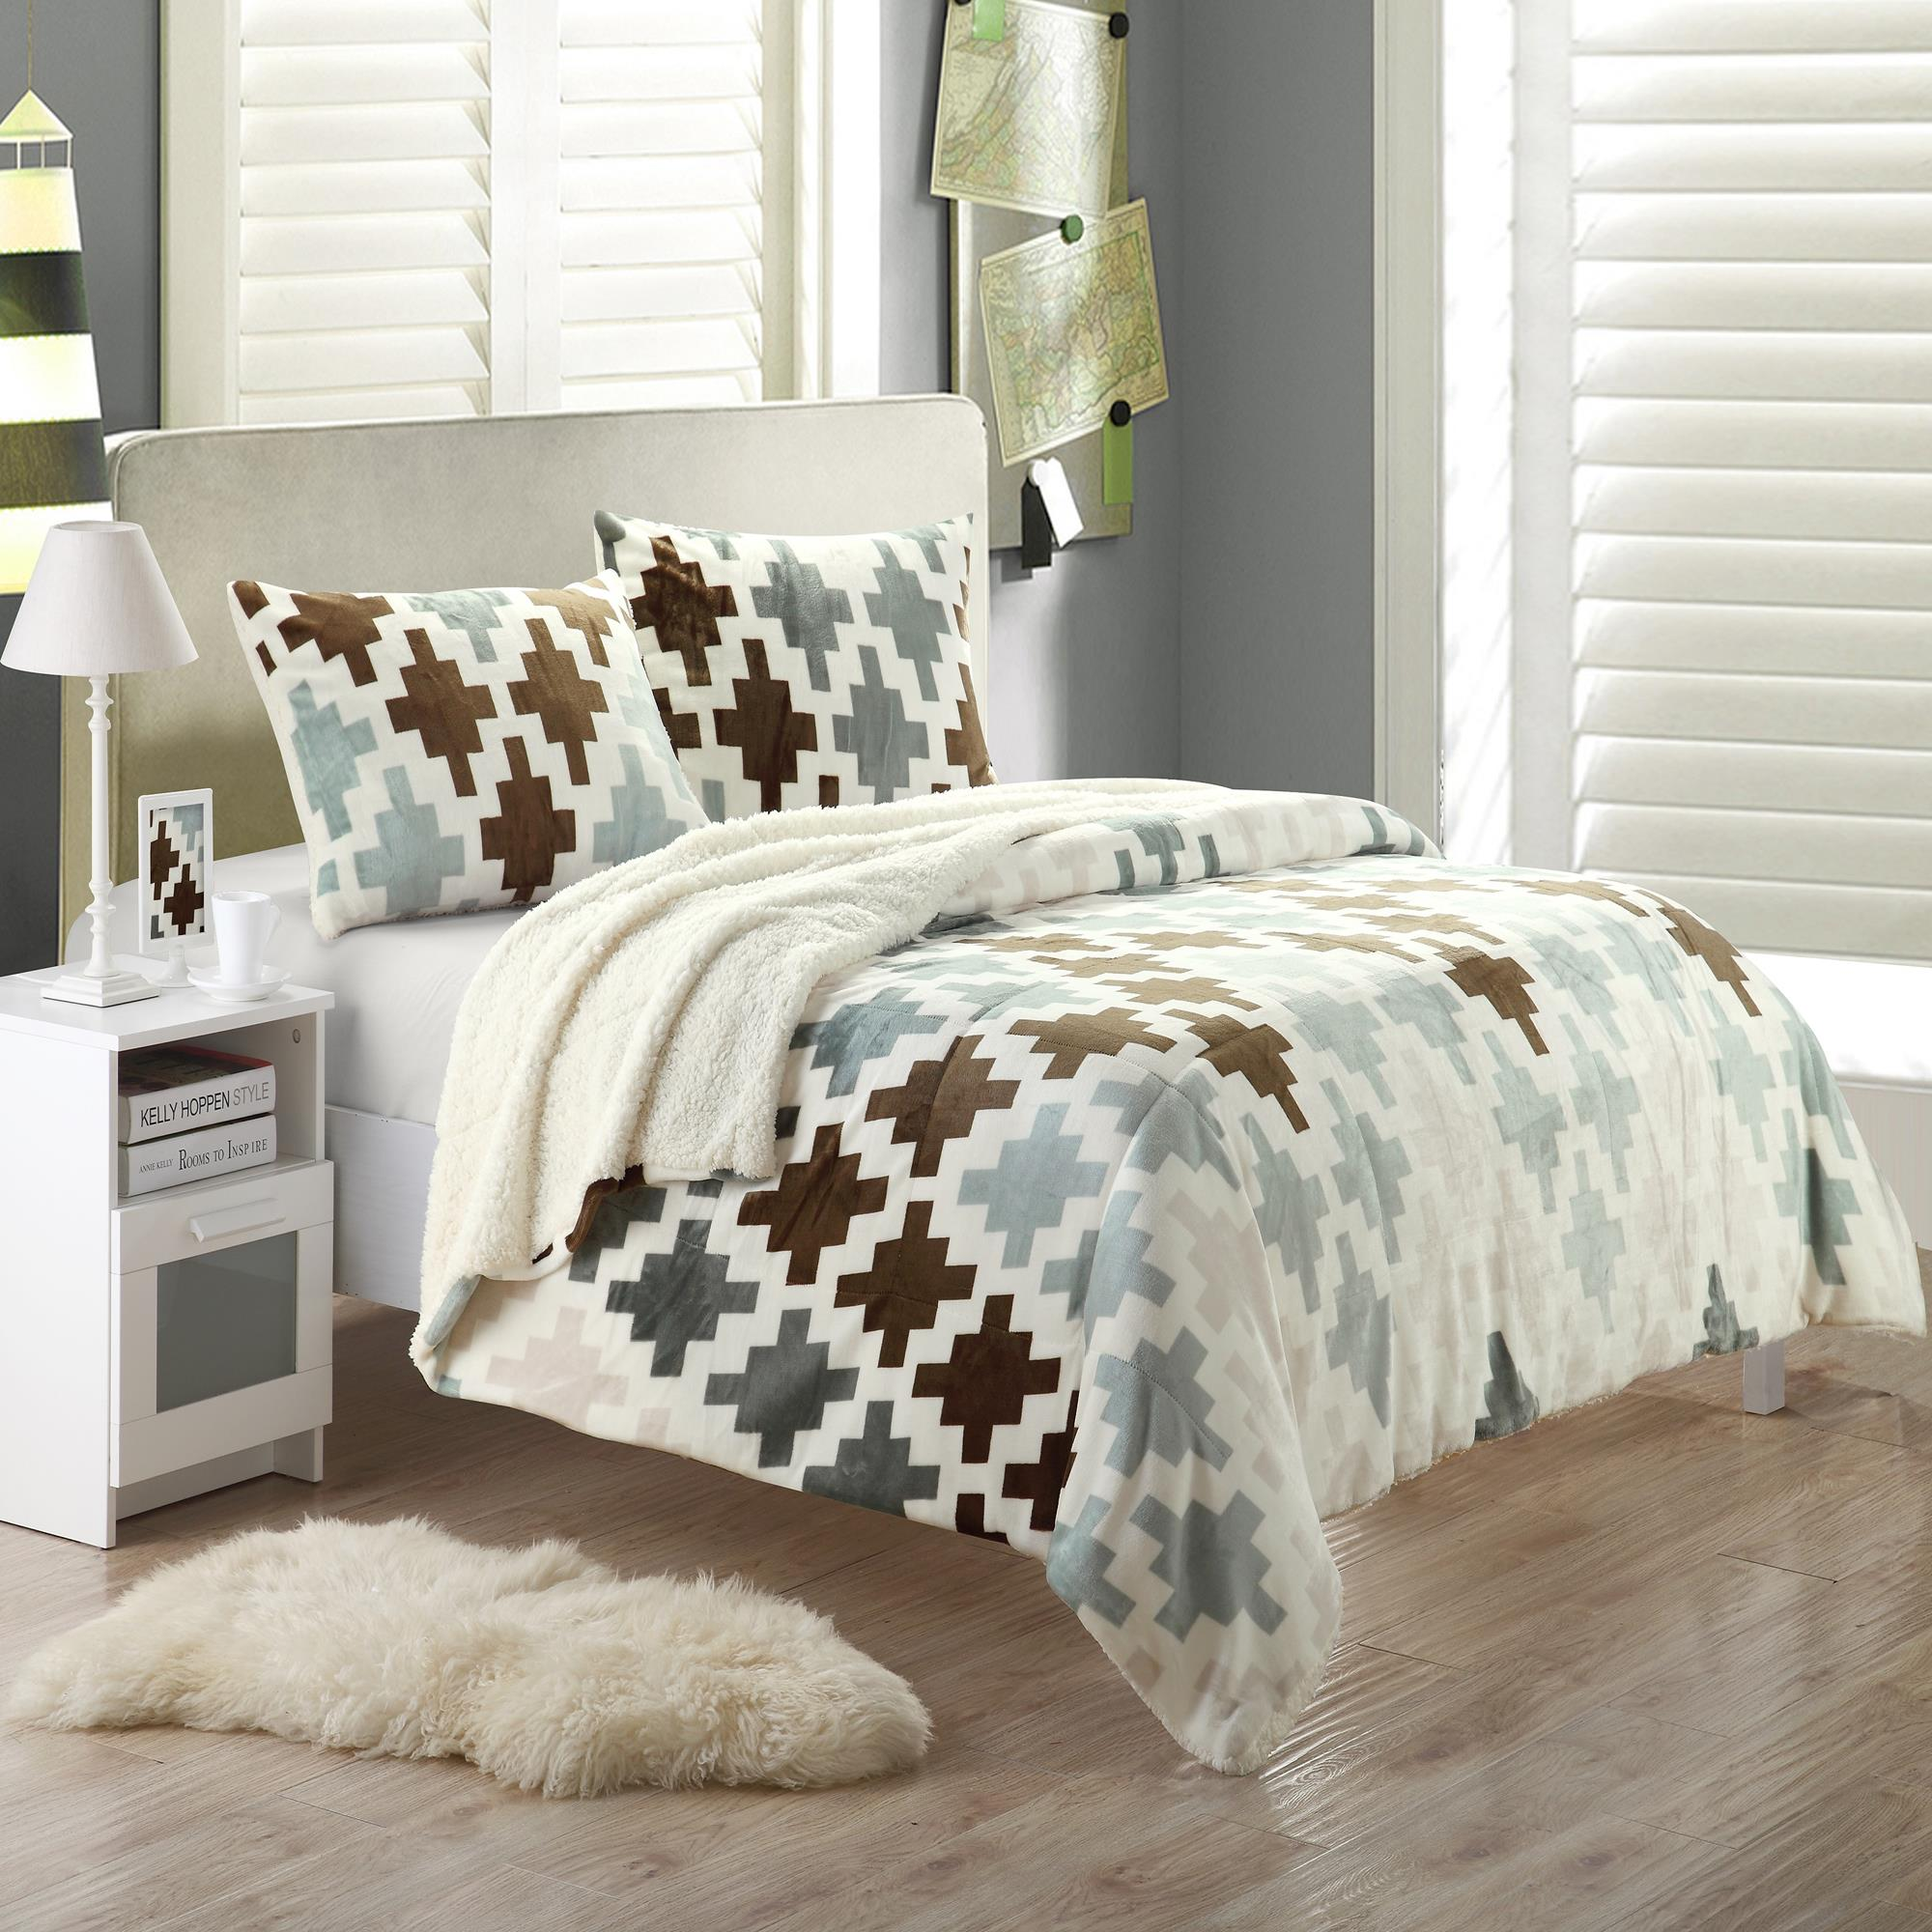 Chic Home Mia Plush Microsuede Printed Sherpa Lined Beige 7 Piece Embroidery Blanket In A Bag Set at Sears.com